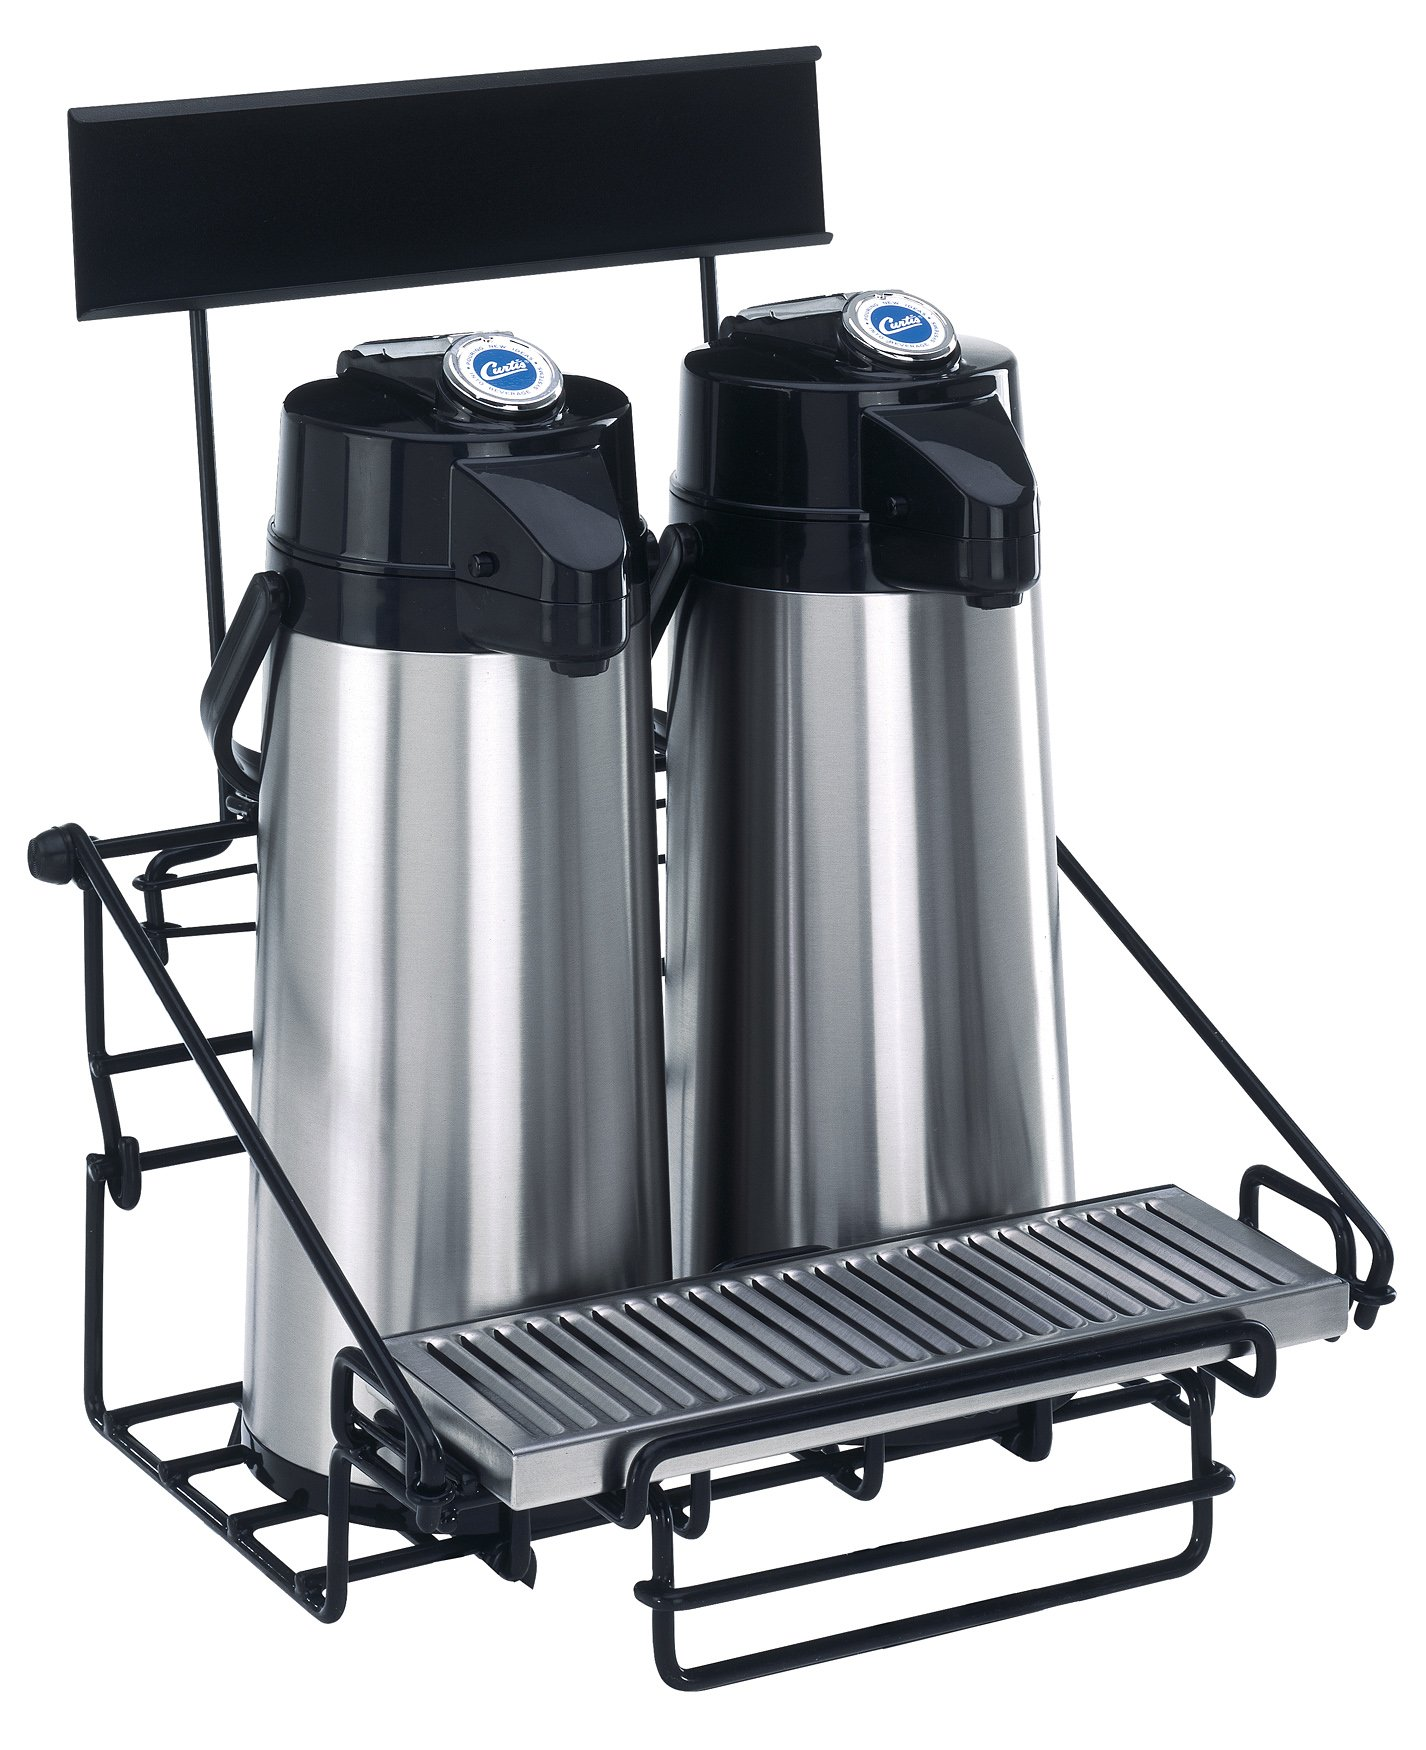 Wilbur Curtis 2 Position Wire Airpot Rack - Compact Design with Integral Drip Tray - WR2B0000 (Each)